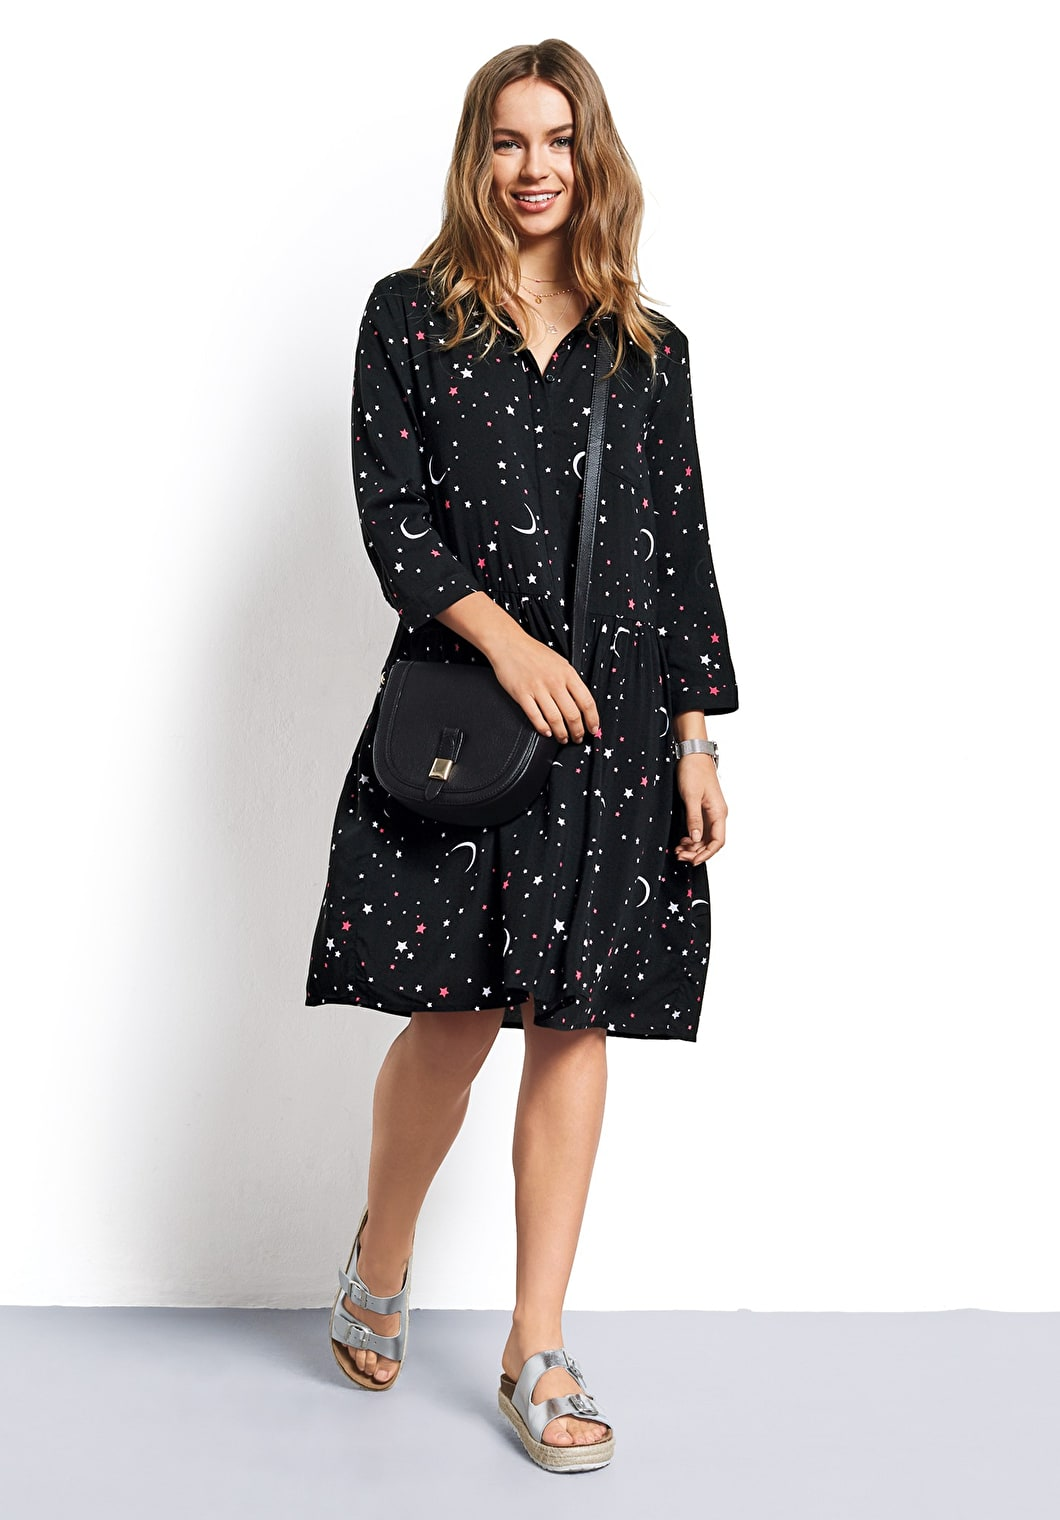 Women wears our cosmic inspired printed shirt dress with moons and stars with 3/4 length sleeves